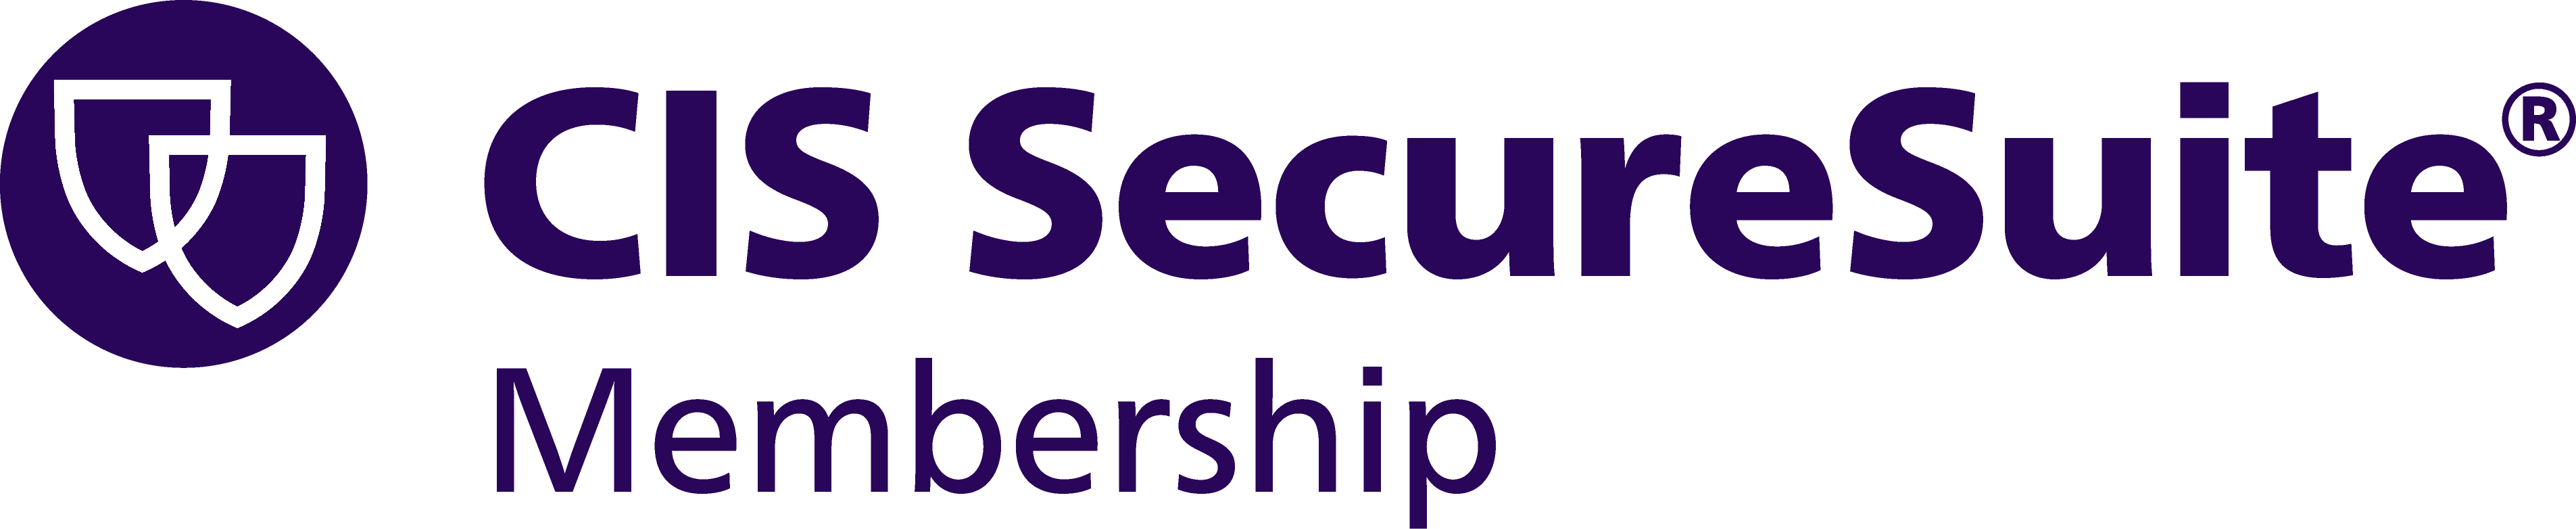 Logo of CIS SecureSuite Membership, an award won by Refactr